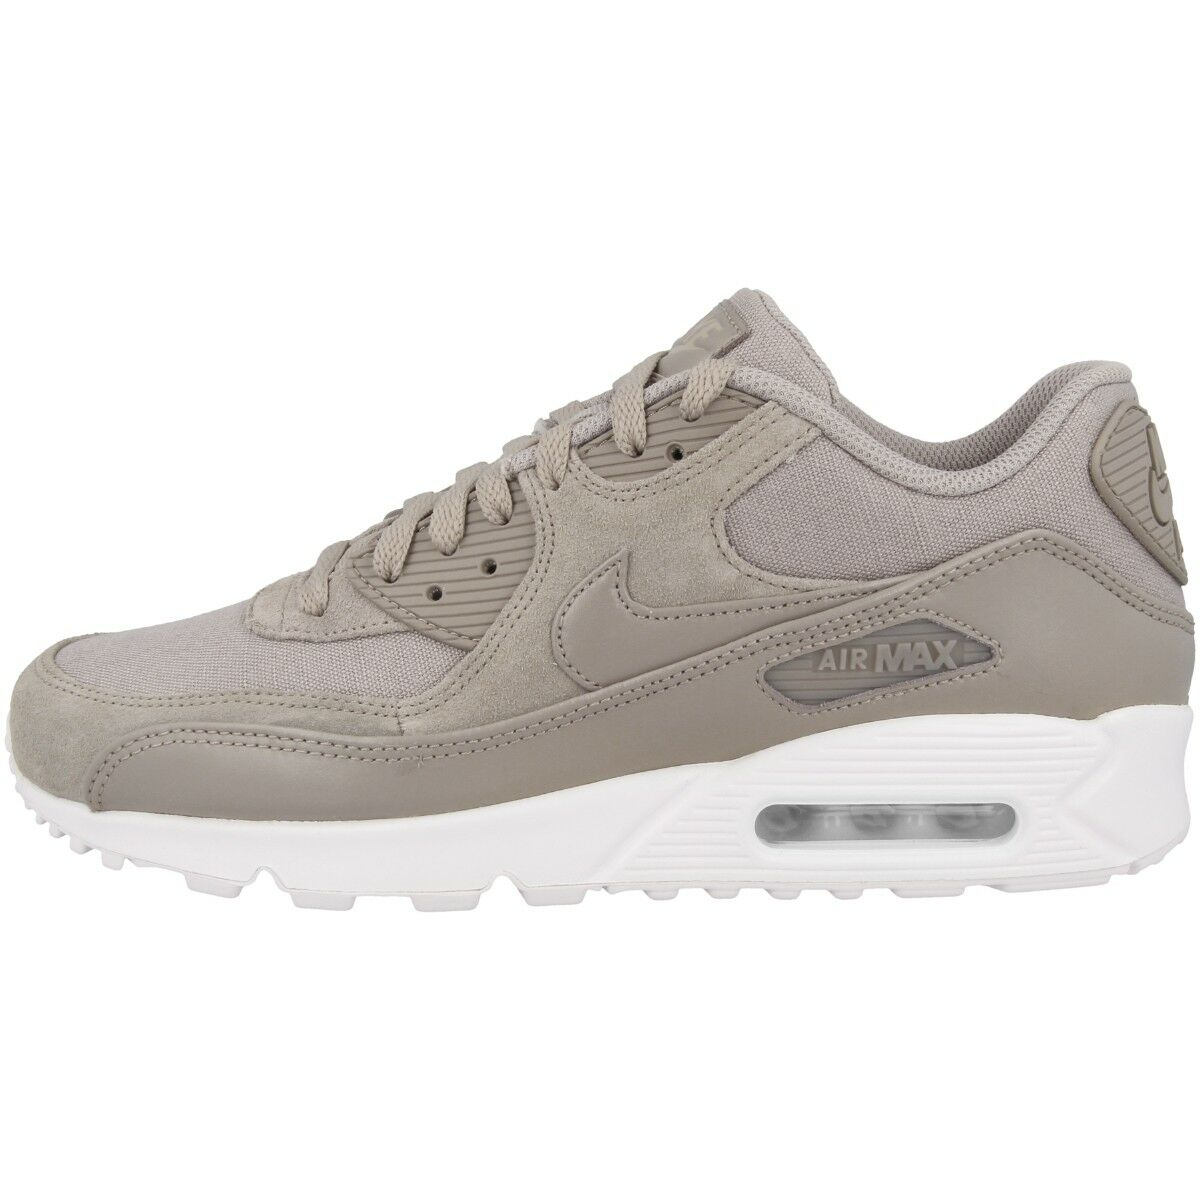 Nike Air Max 90 PREMIUM Chaussures baskets Cobblestone Blanc Essentiel BW